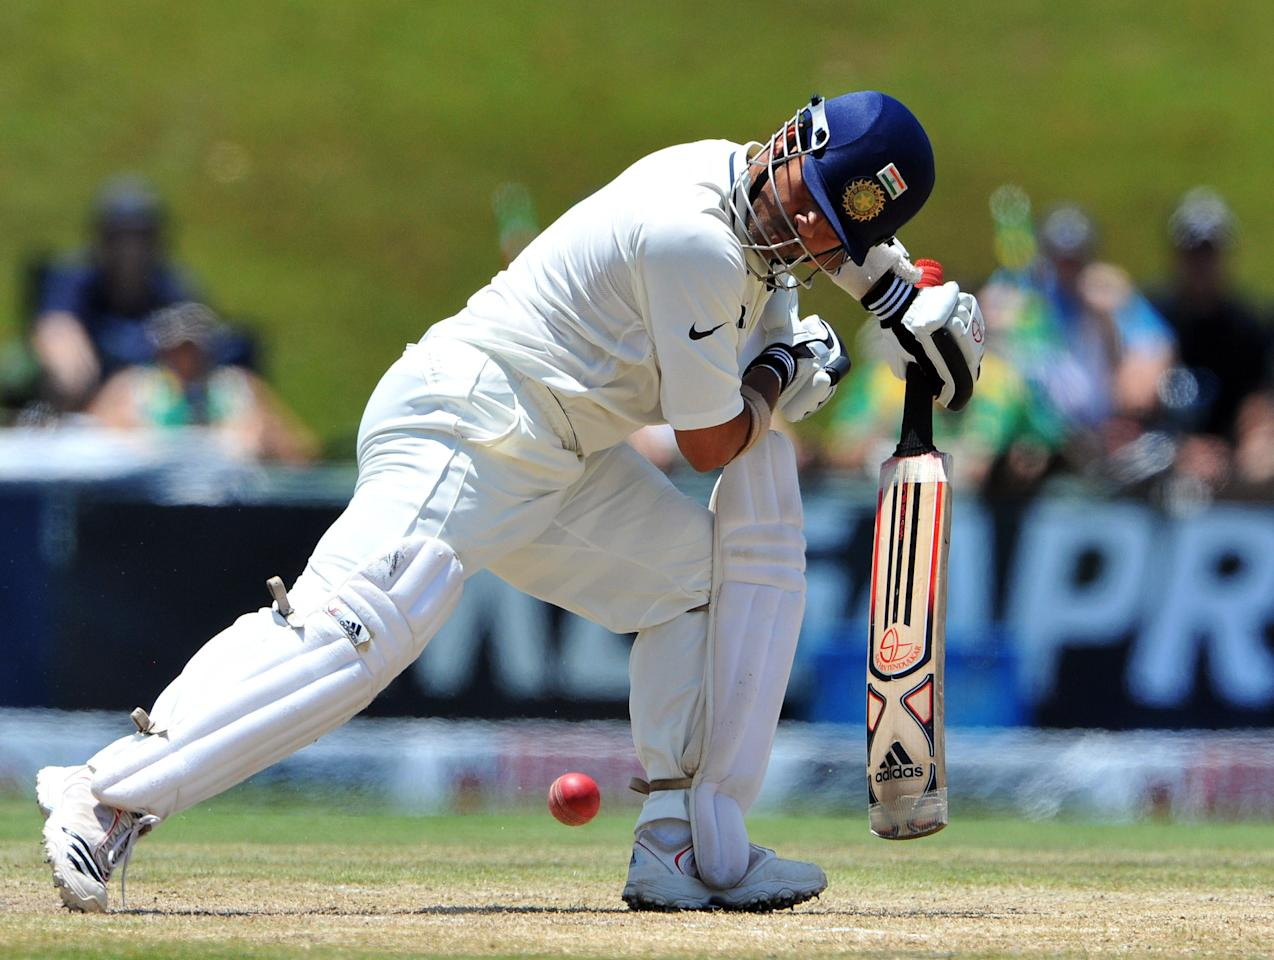 CENTURION, SOUTH AFRICA - DECEMBER 19: Sachin Tendulkar of India plays a defensive shot  during day 4 of the 1st Test match between South Africa and India, at SuperSport Park on December 19, 2010 in Centurion, South Africa (Photo by Duif du Toit/Gallo Images/Getty Images)